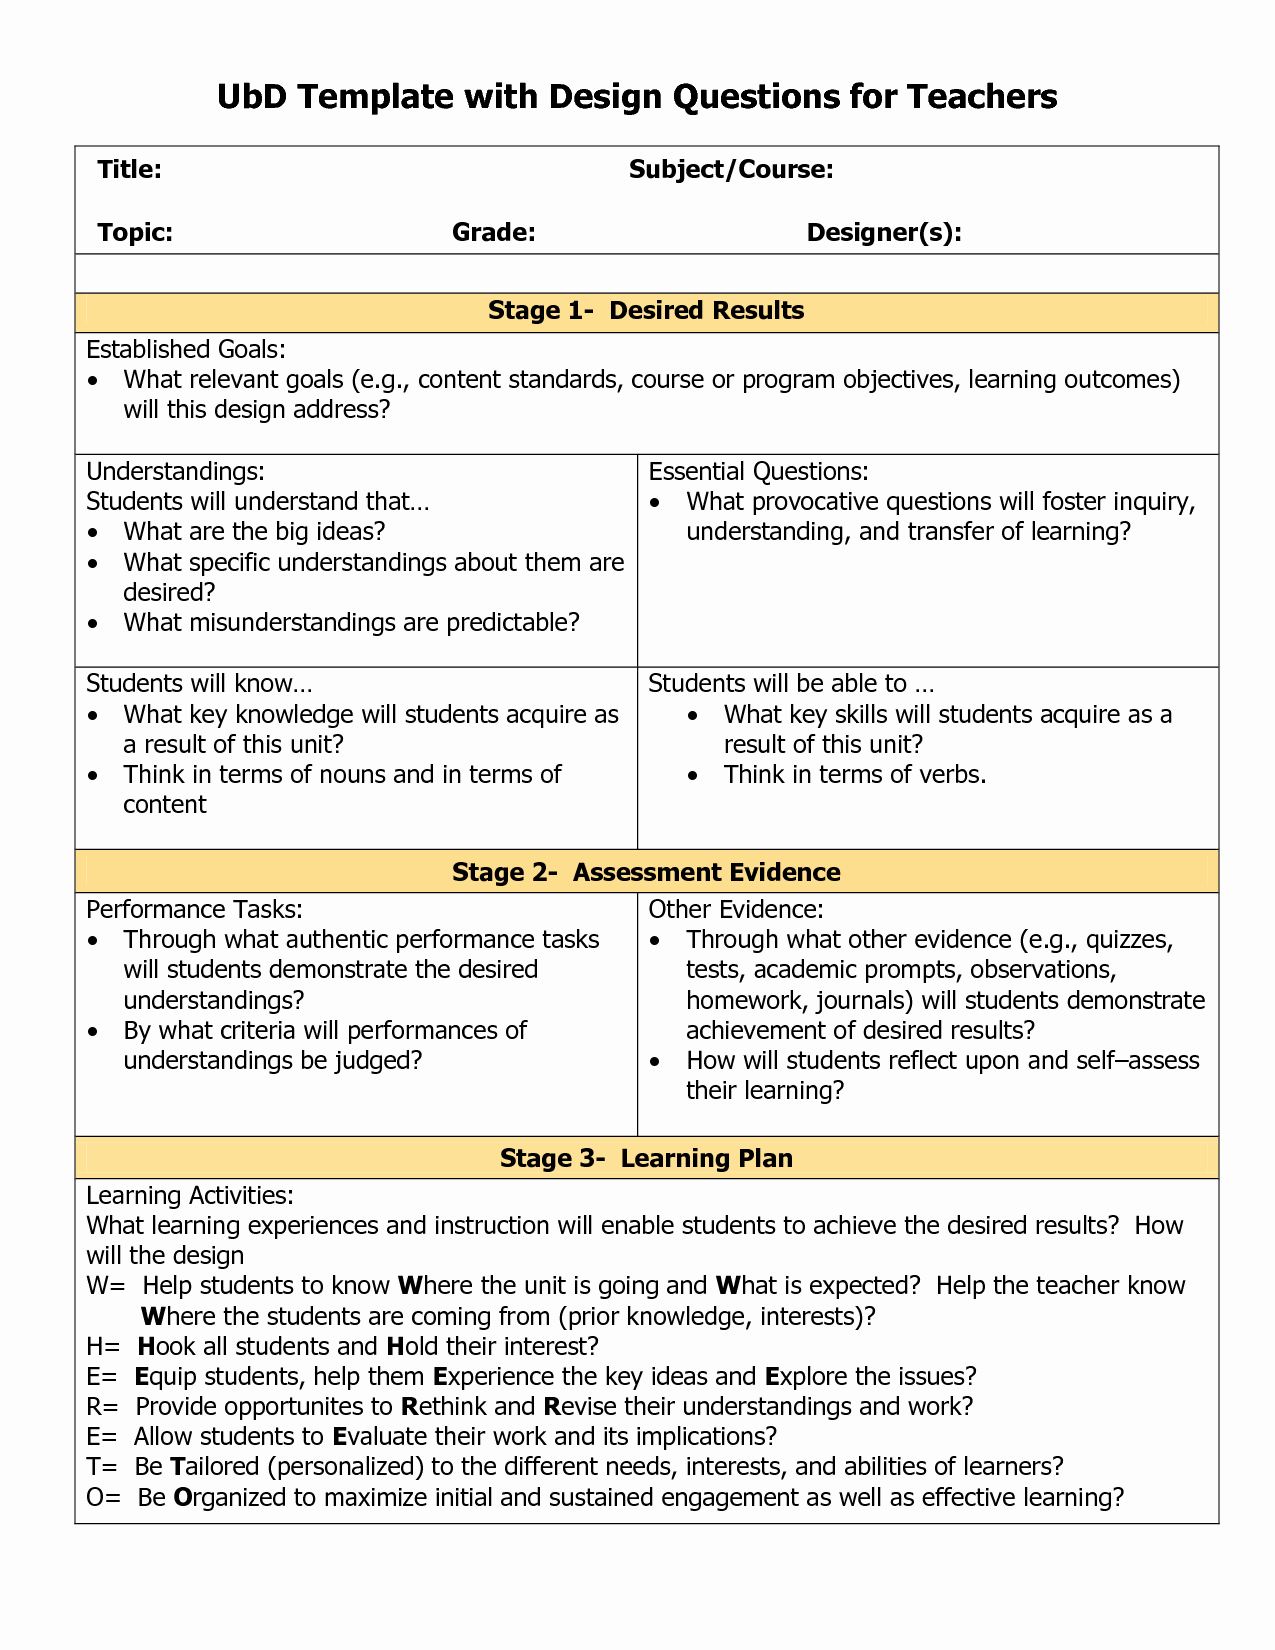 Teaching Strategies Lesson Plan Template Luxury Blank Ubd Template